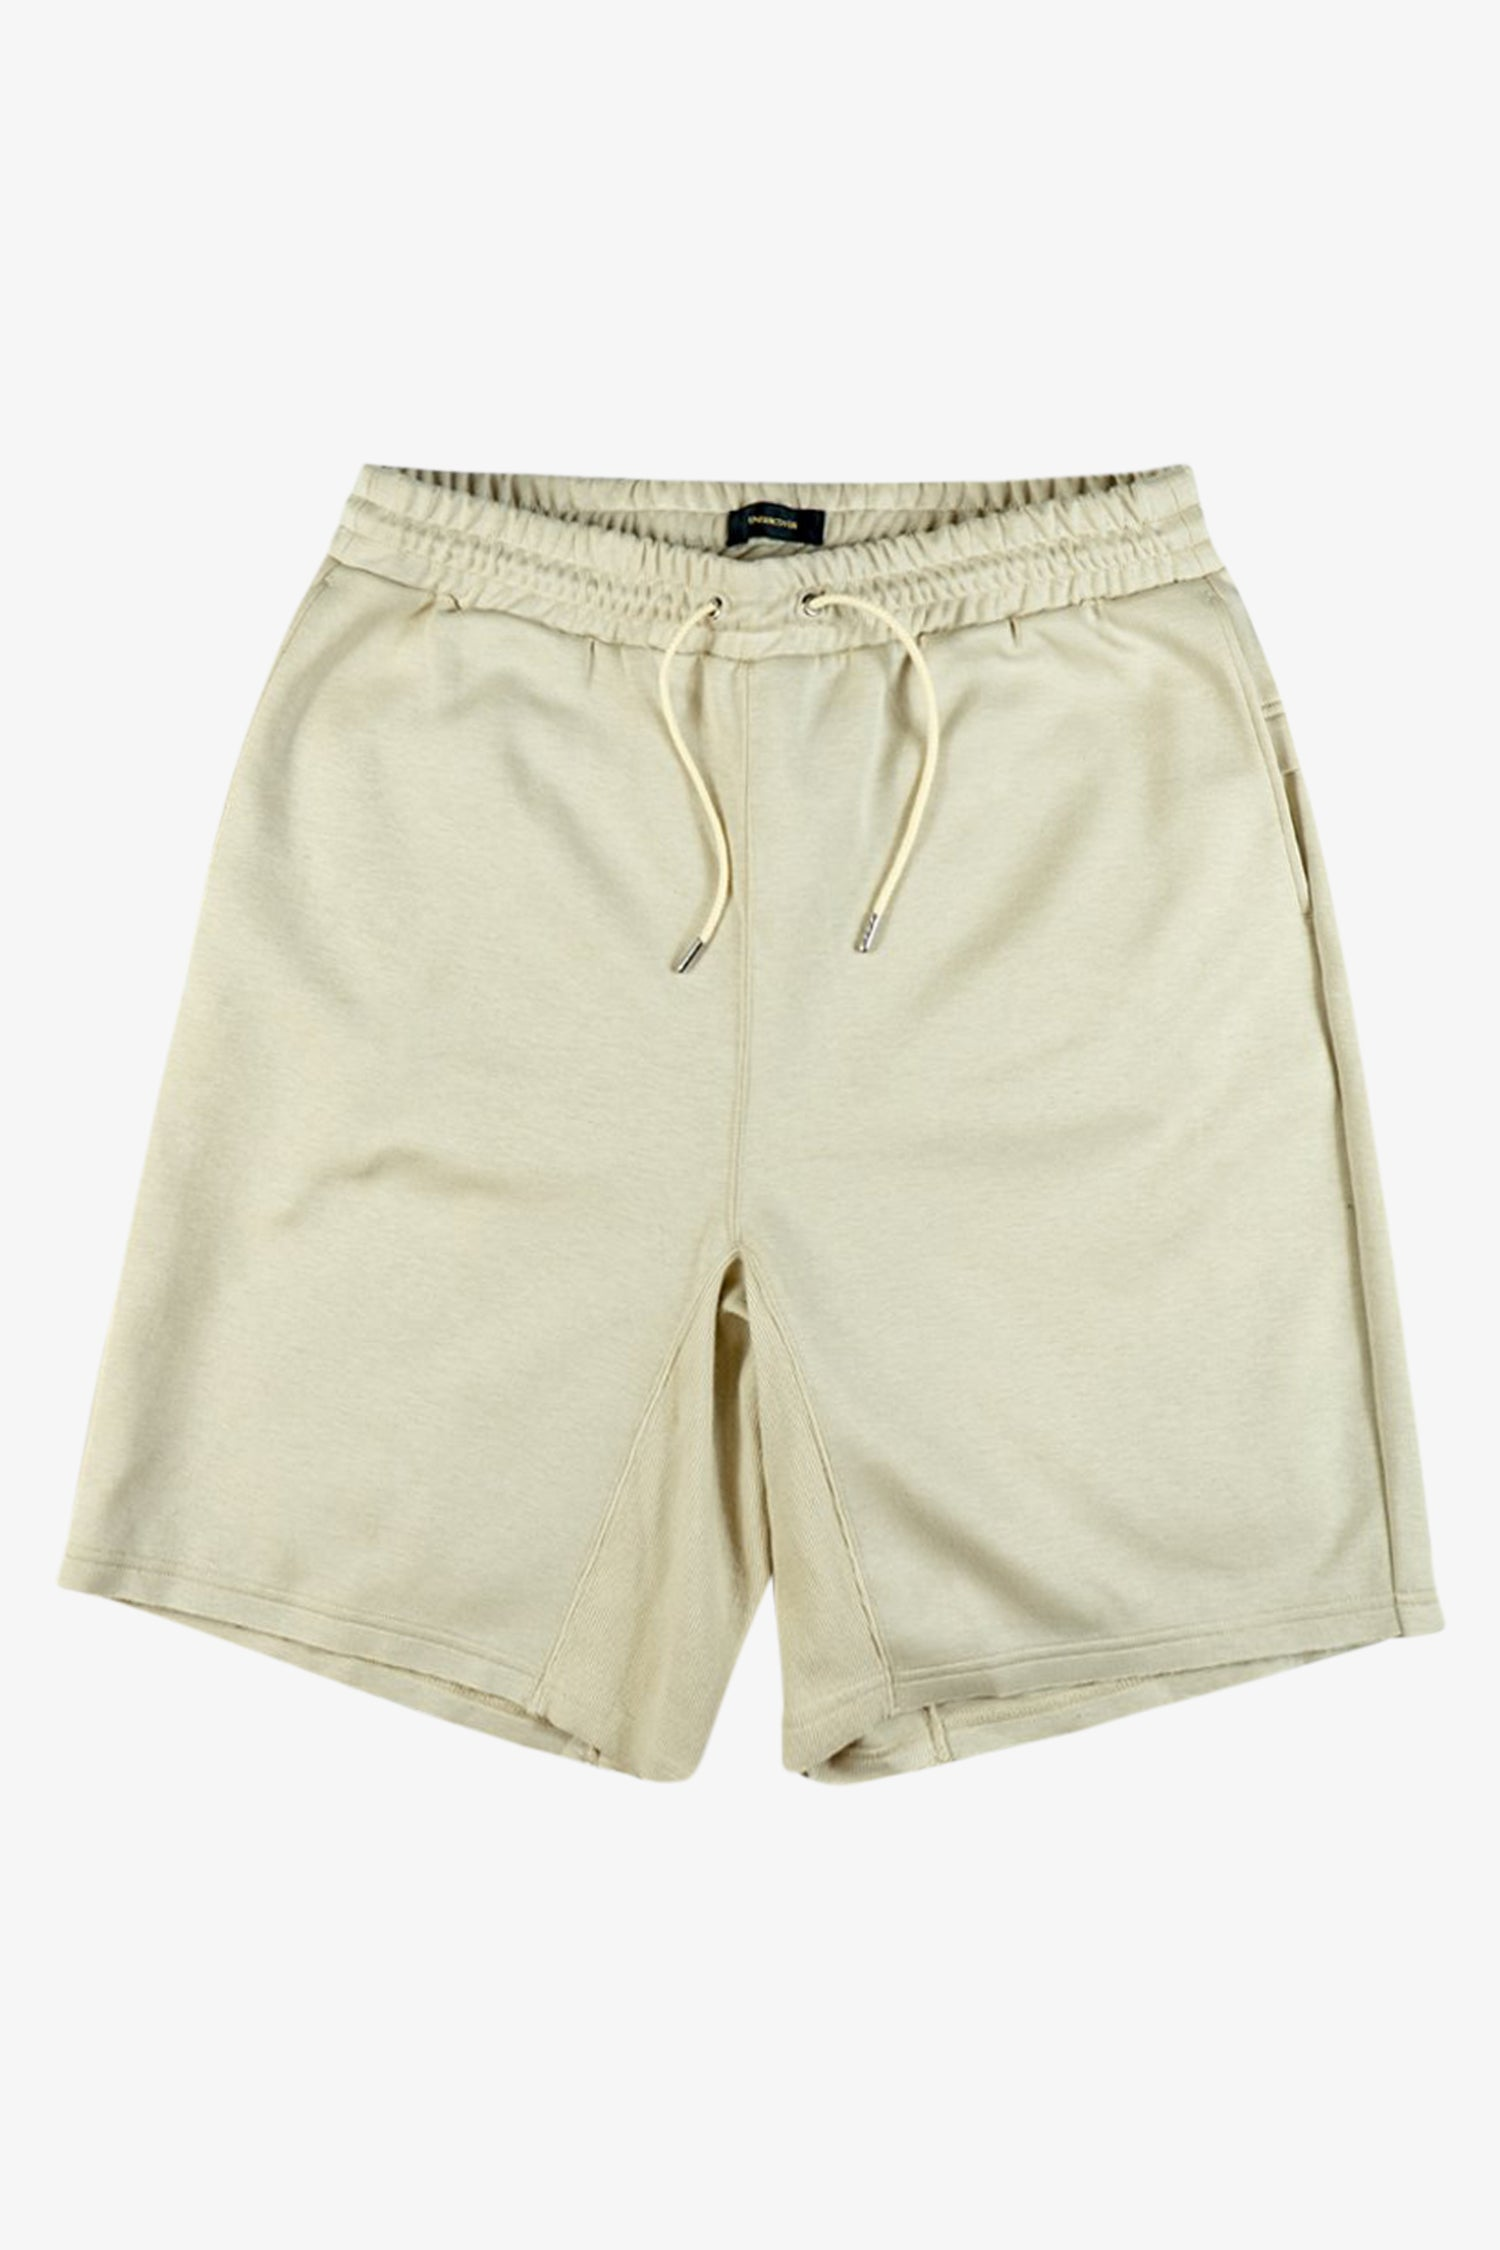 Selectshop FRAME - UNDERCOVER Human Control System Shorts Bottoms Dubai